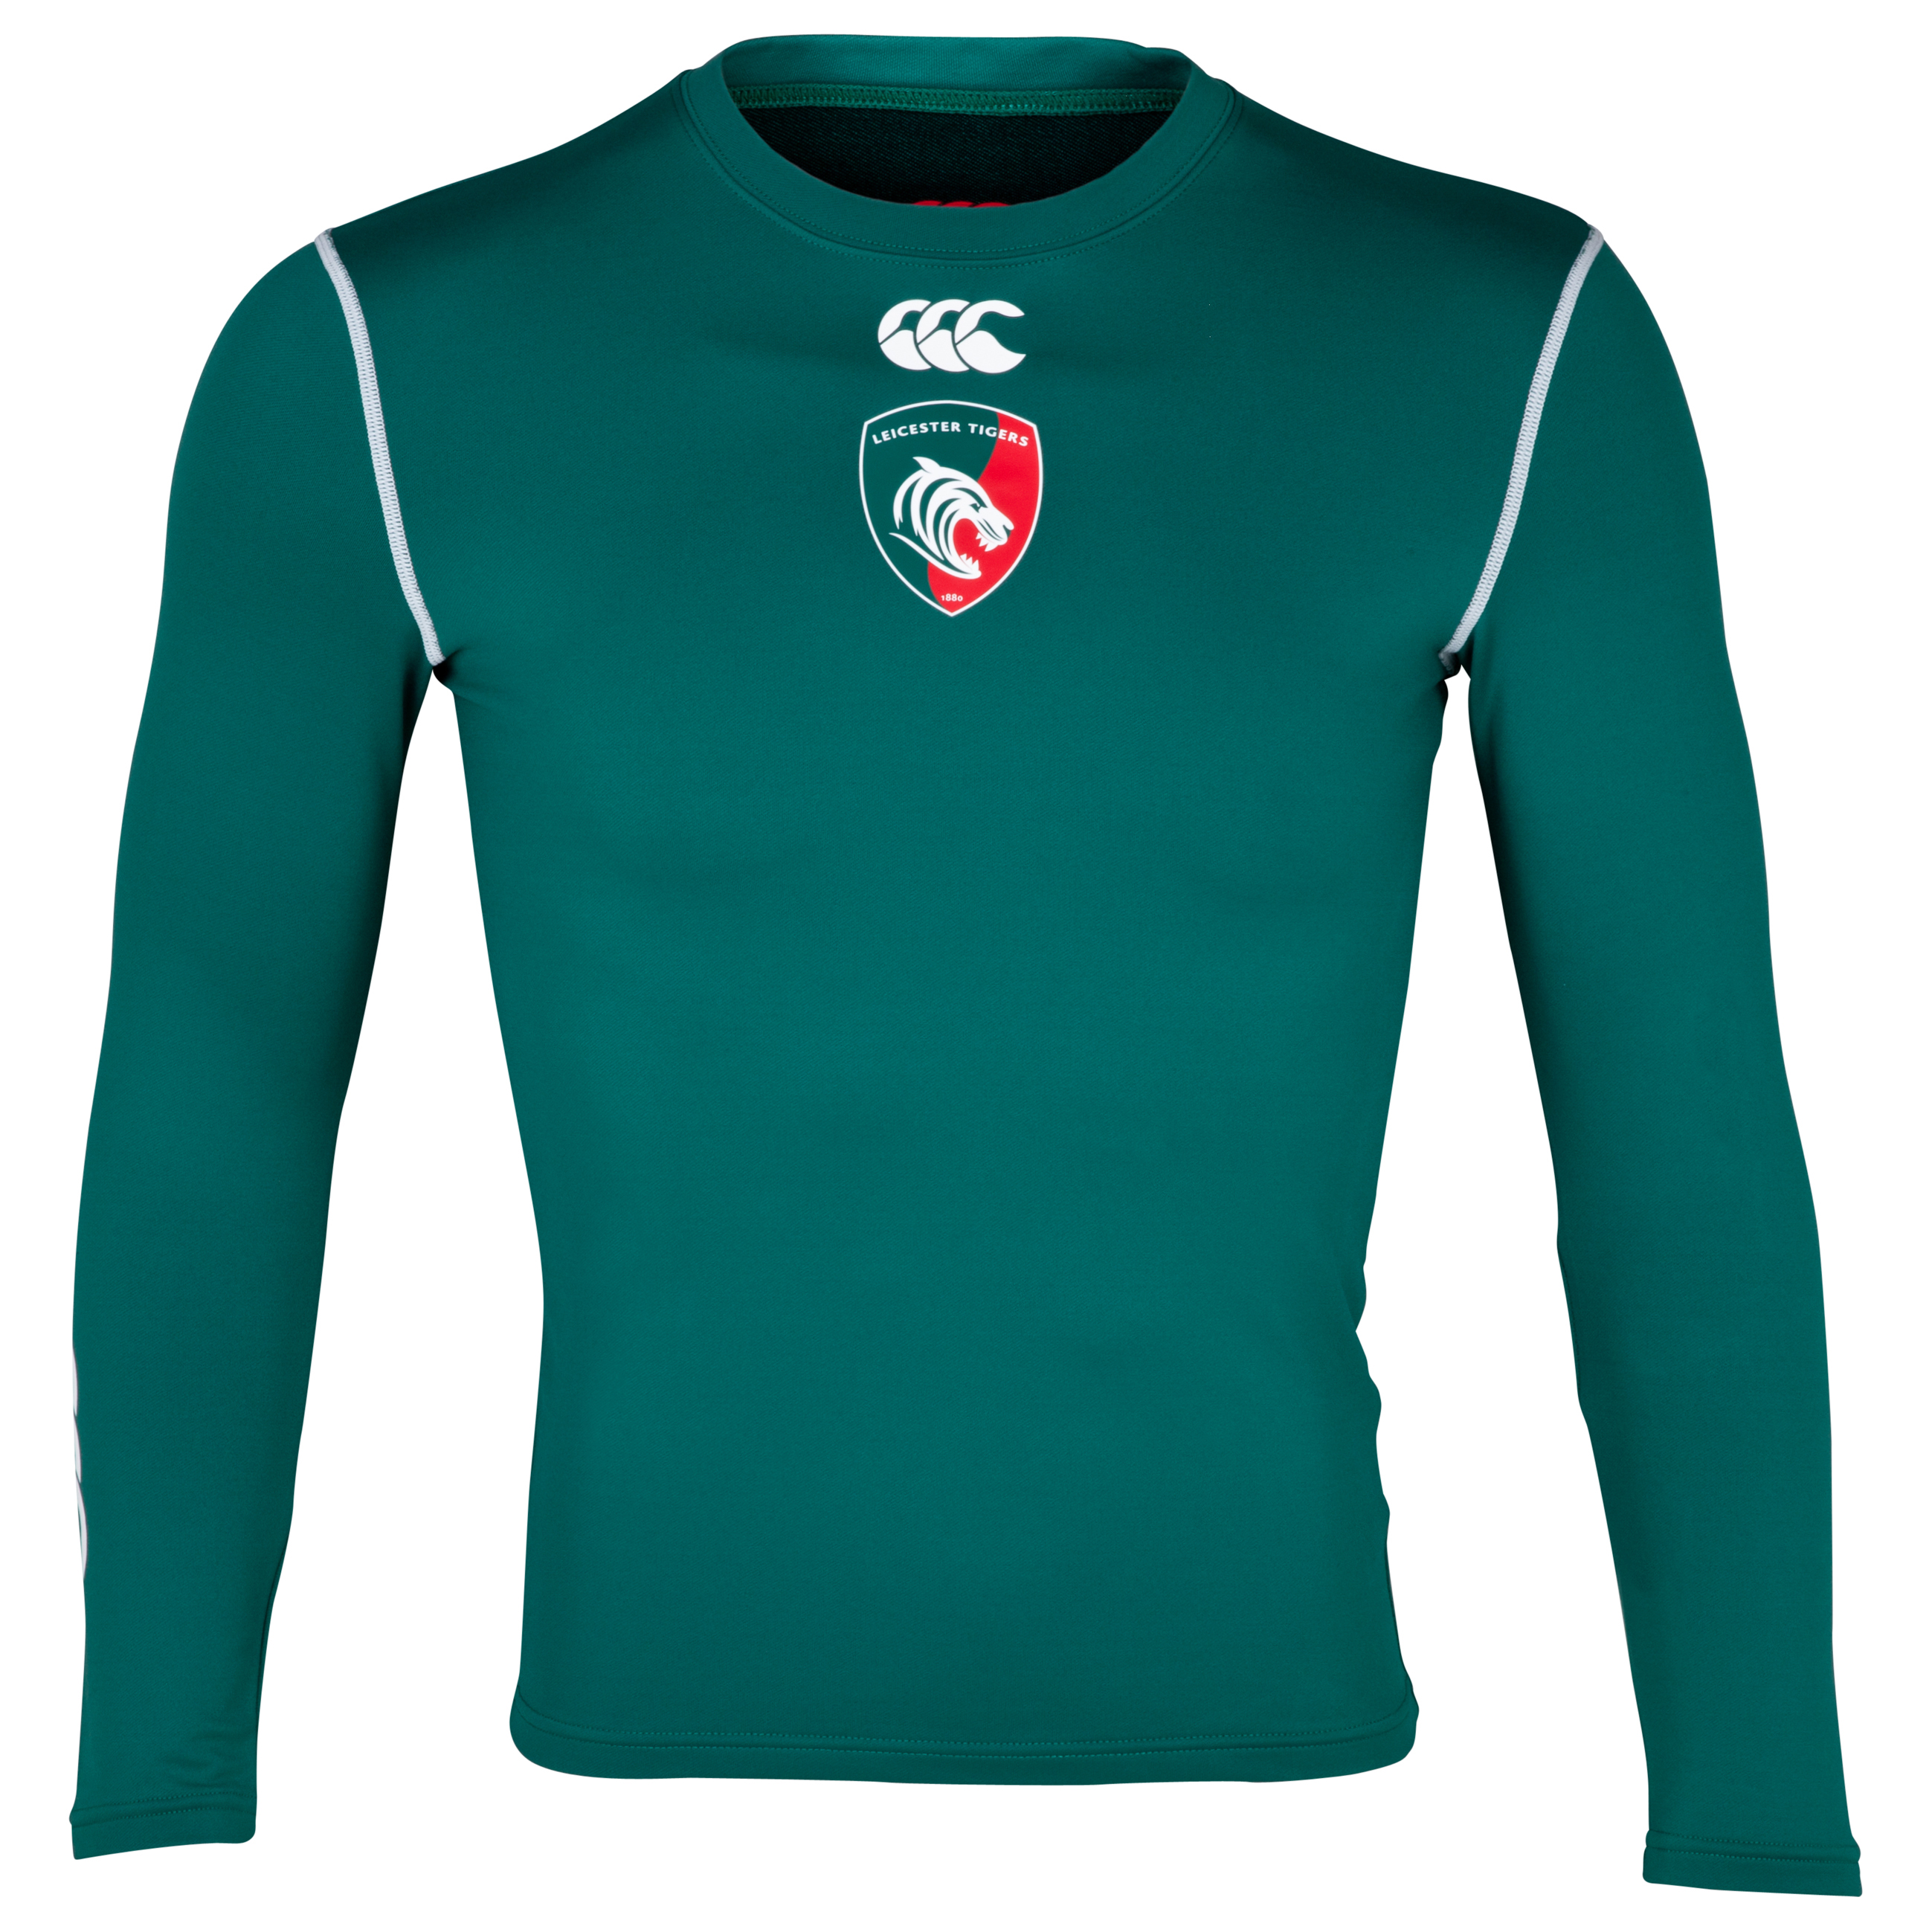 Leicester Tigers Home Cold Baselayer 2013/14 - Long Sleeved Dk Green